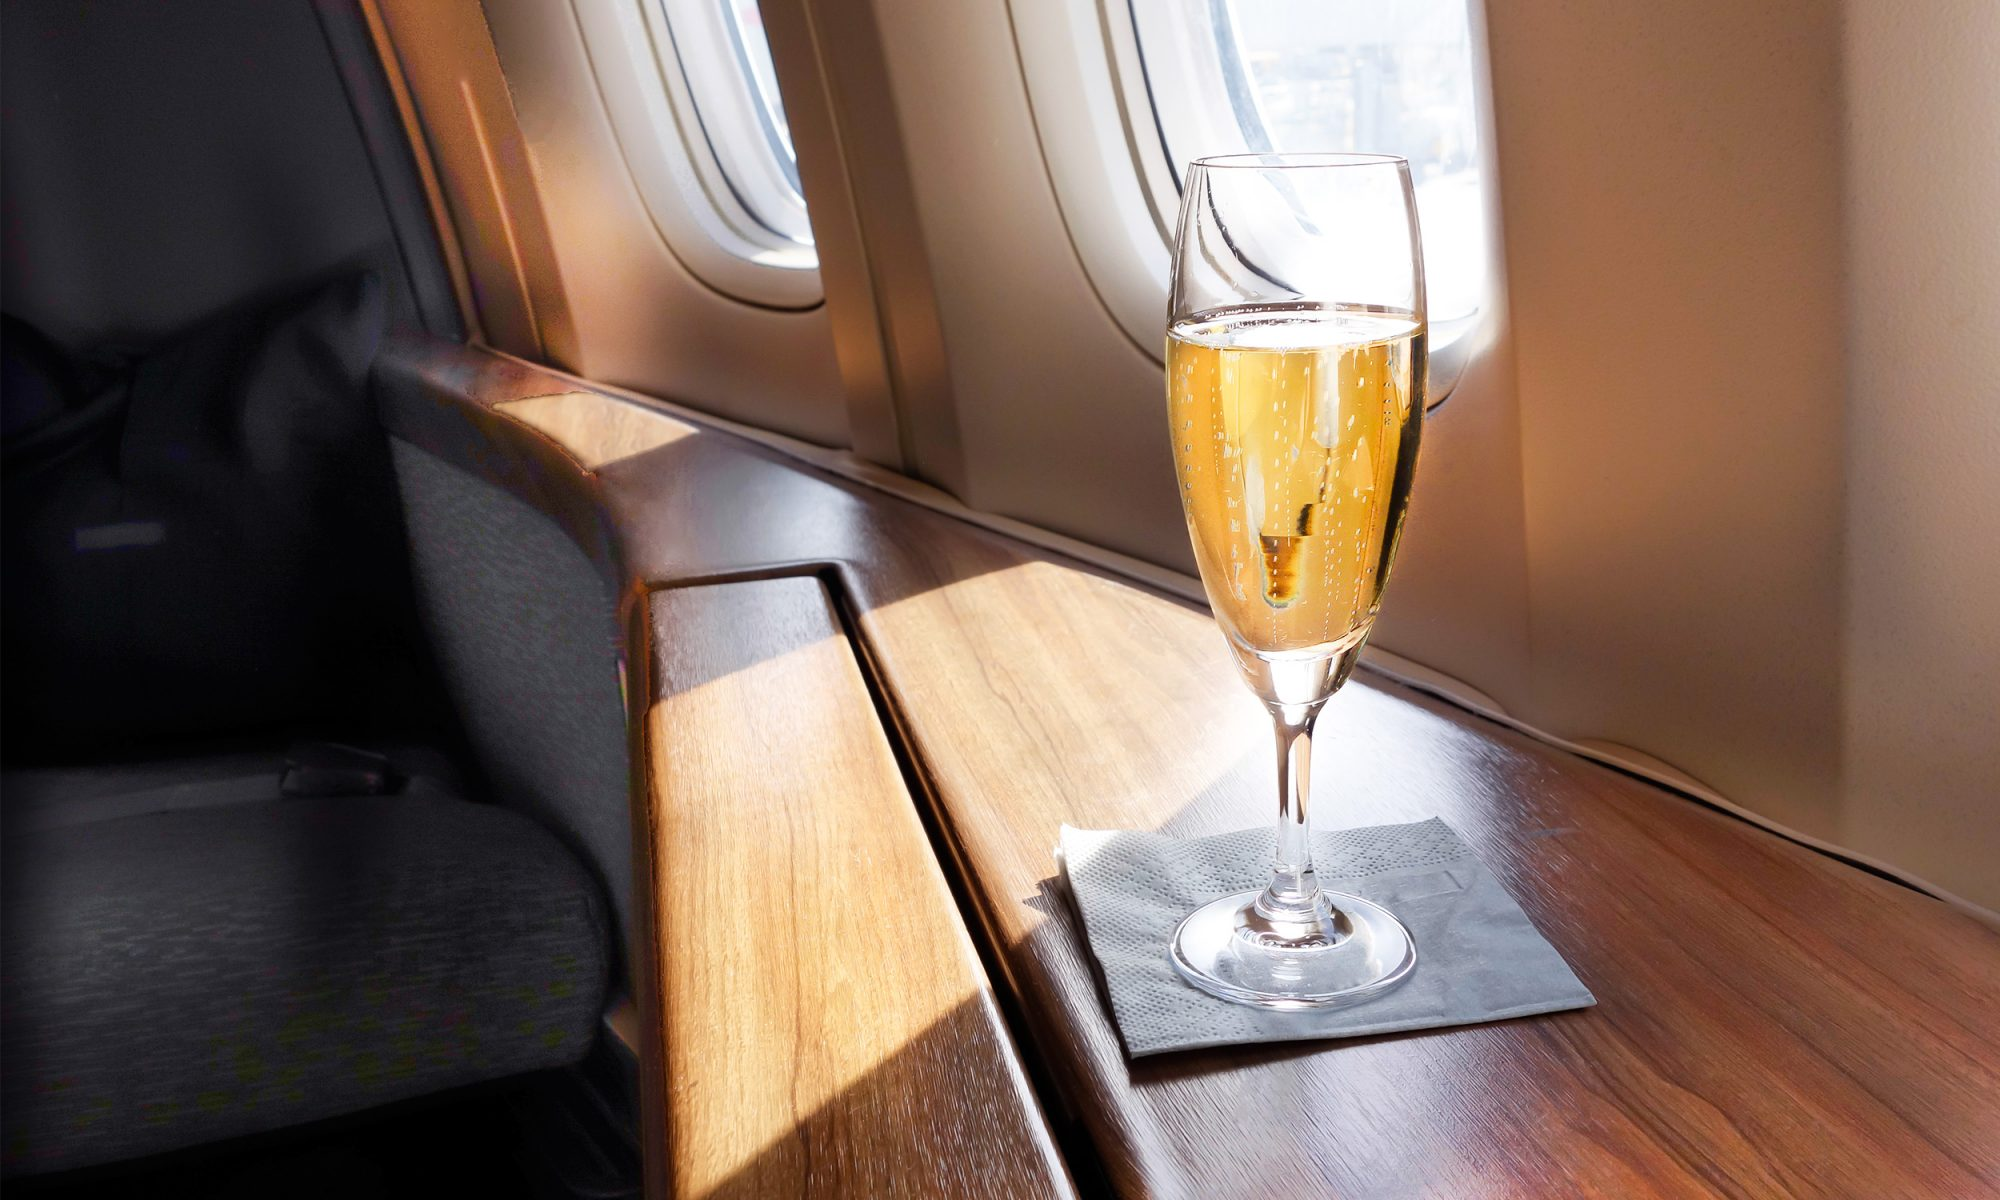 EC: Someone's Suing an Airline for Serving Sparkling Wine Instead of Champagne